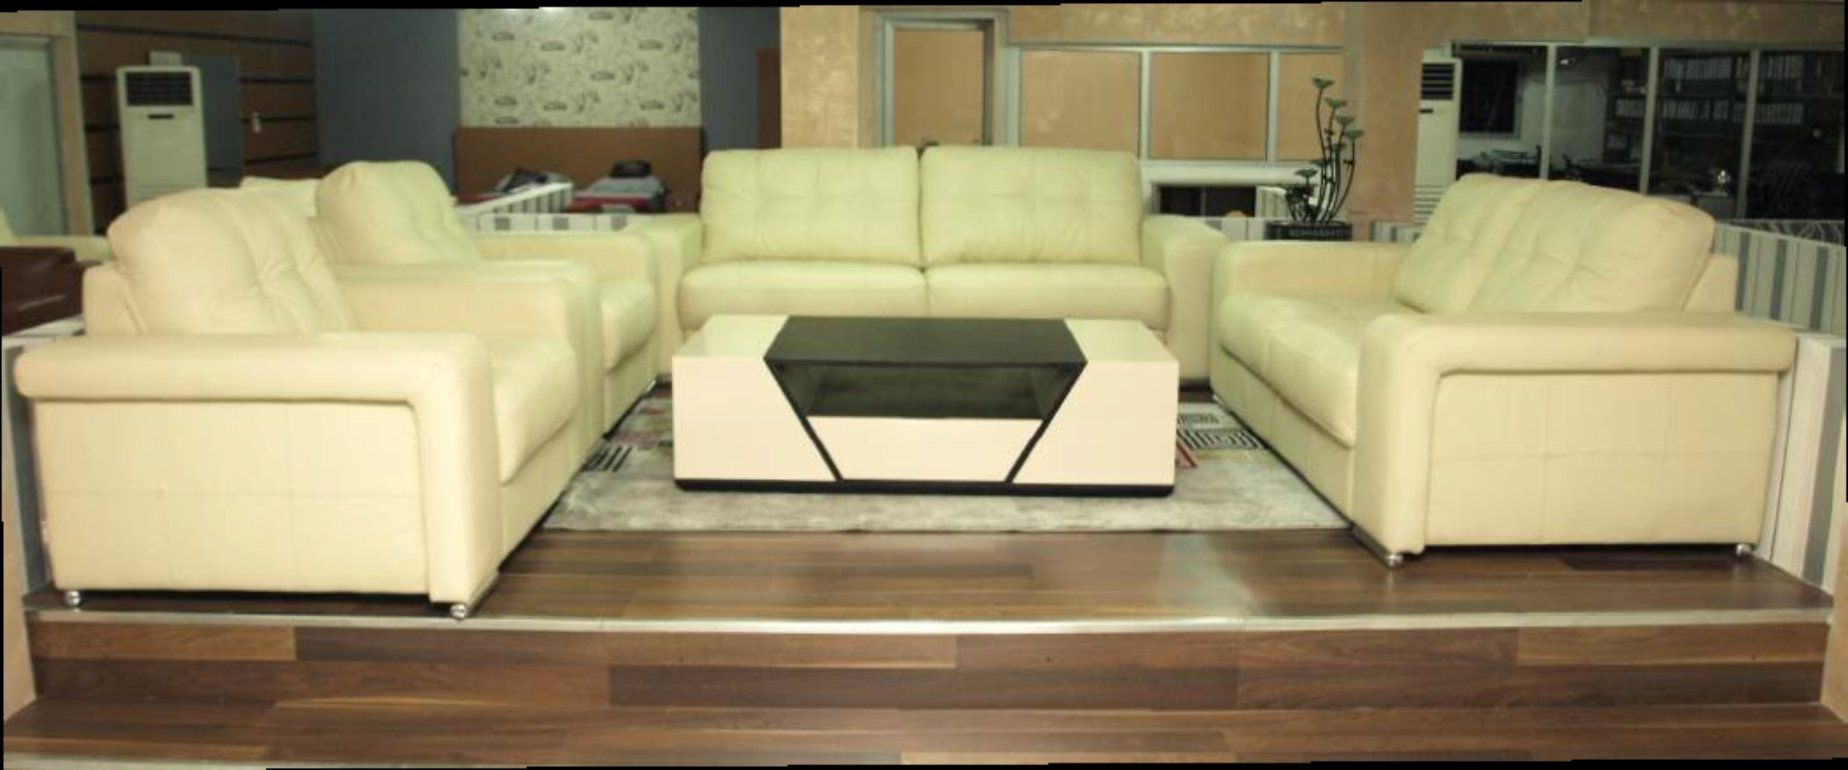 Alibert Furnitures Living Room Furniture Buy Online Jumia Nigeria